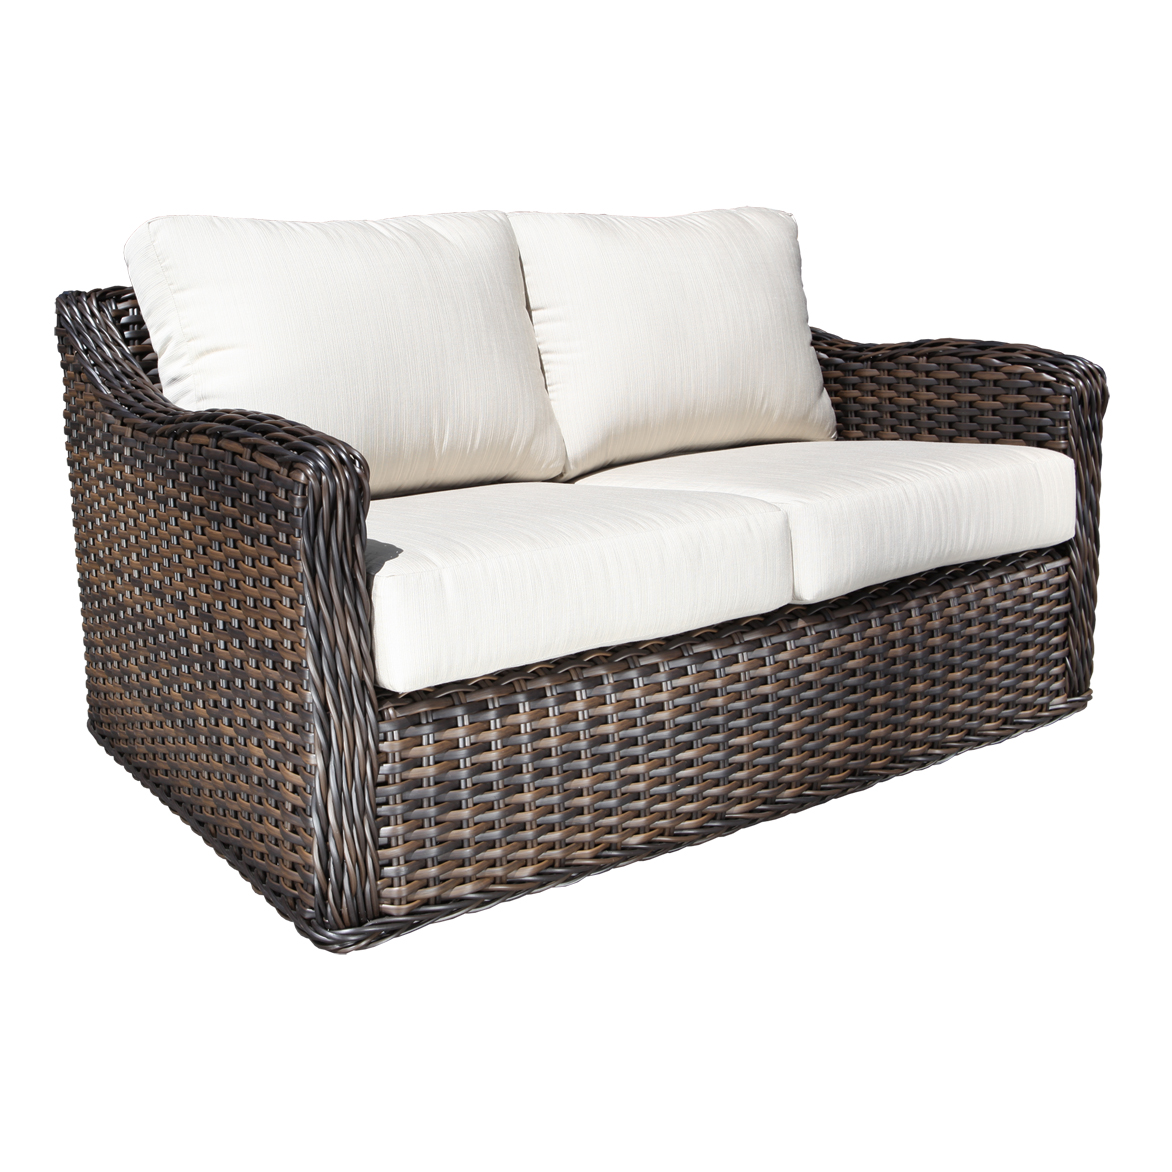 Cool resin wicker patio furniture for all weather hgnv com for Wicker patio furniture